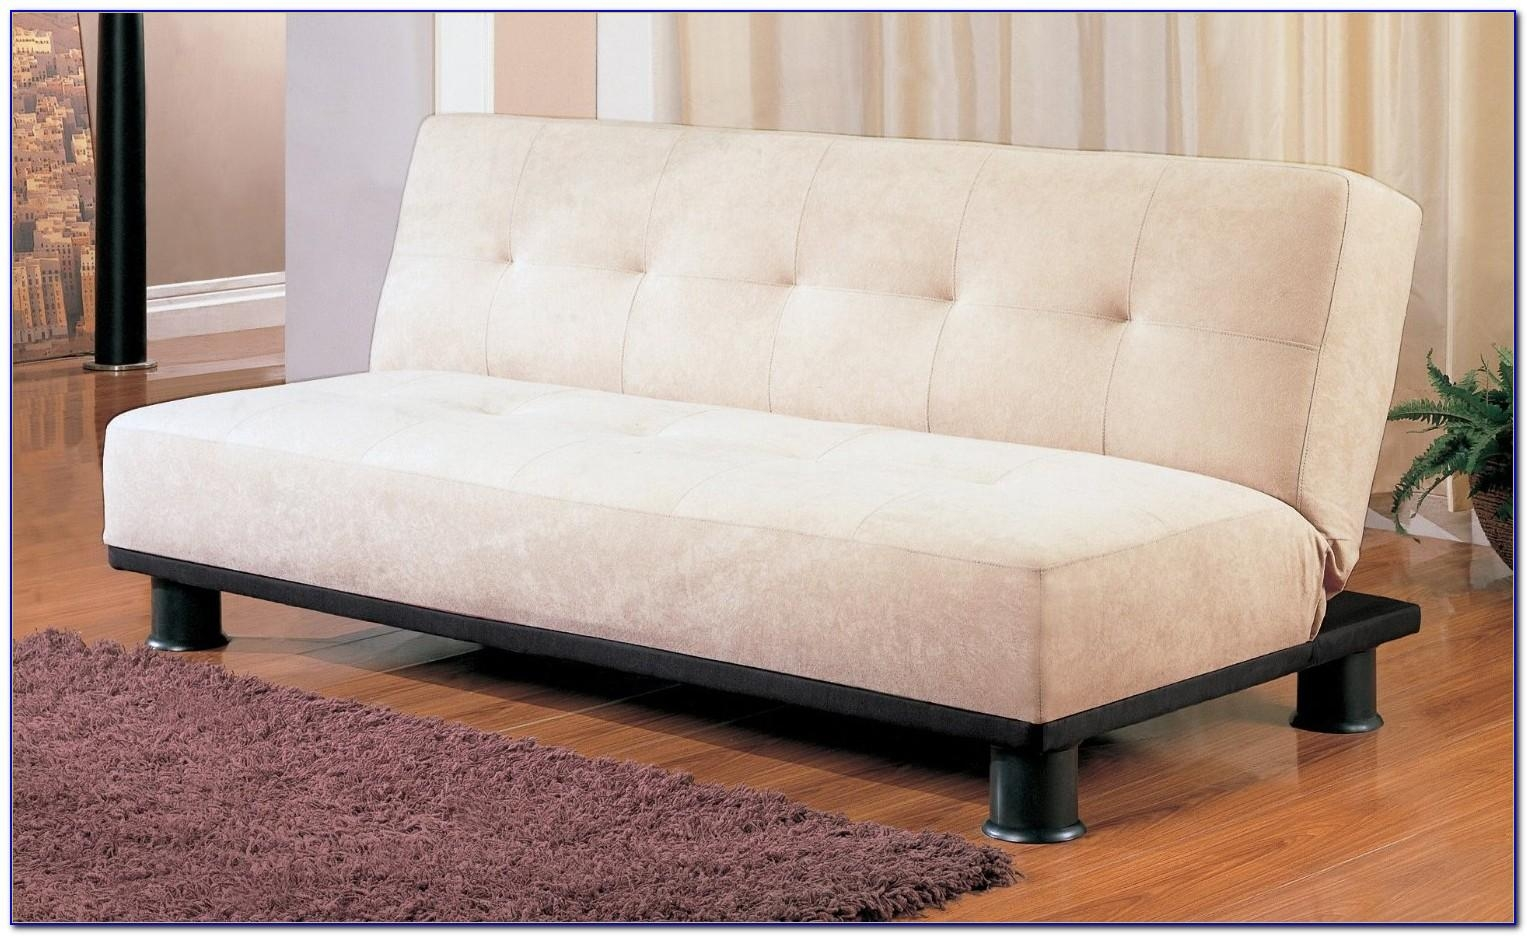 Luxury Softee Sofa Bed 89 For Castro Convertibles Beds With And Inside Castro Convertible Sofas (View 8 of 20)